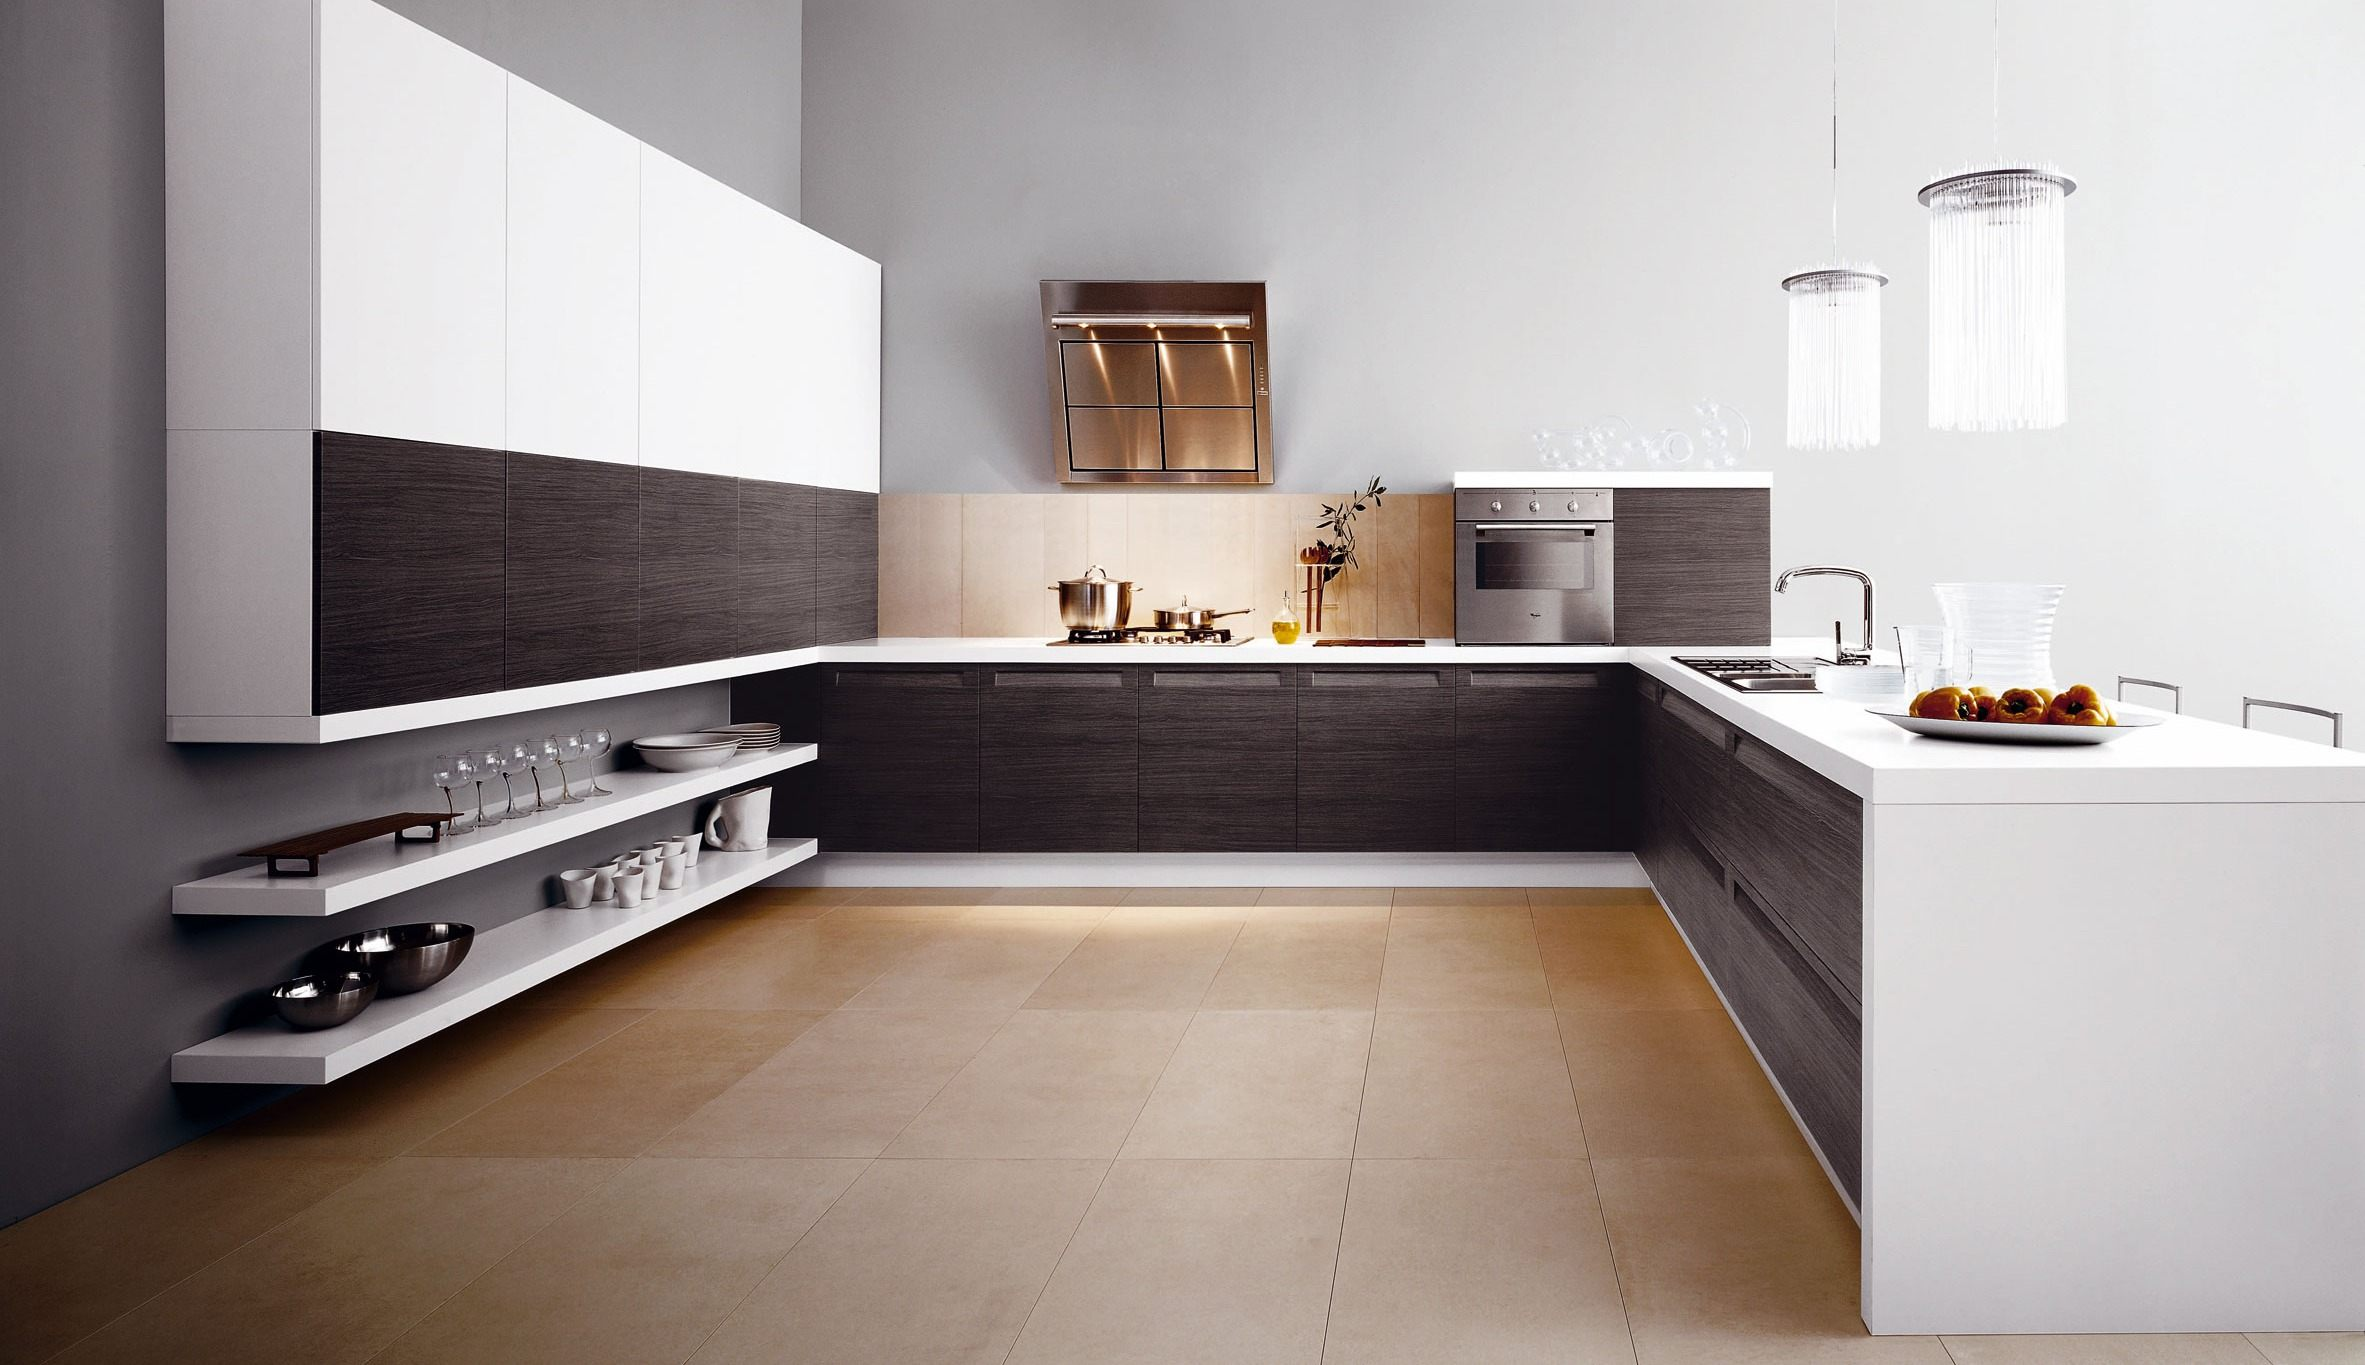 Salon Moderne Et Design :  Kitchen Designs from Cesar » Modern Simple and Spacious Kitchen